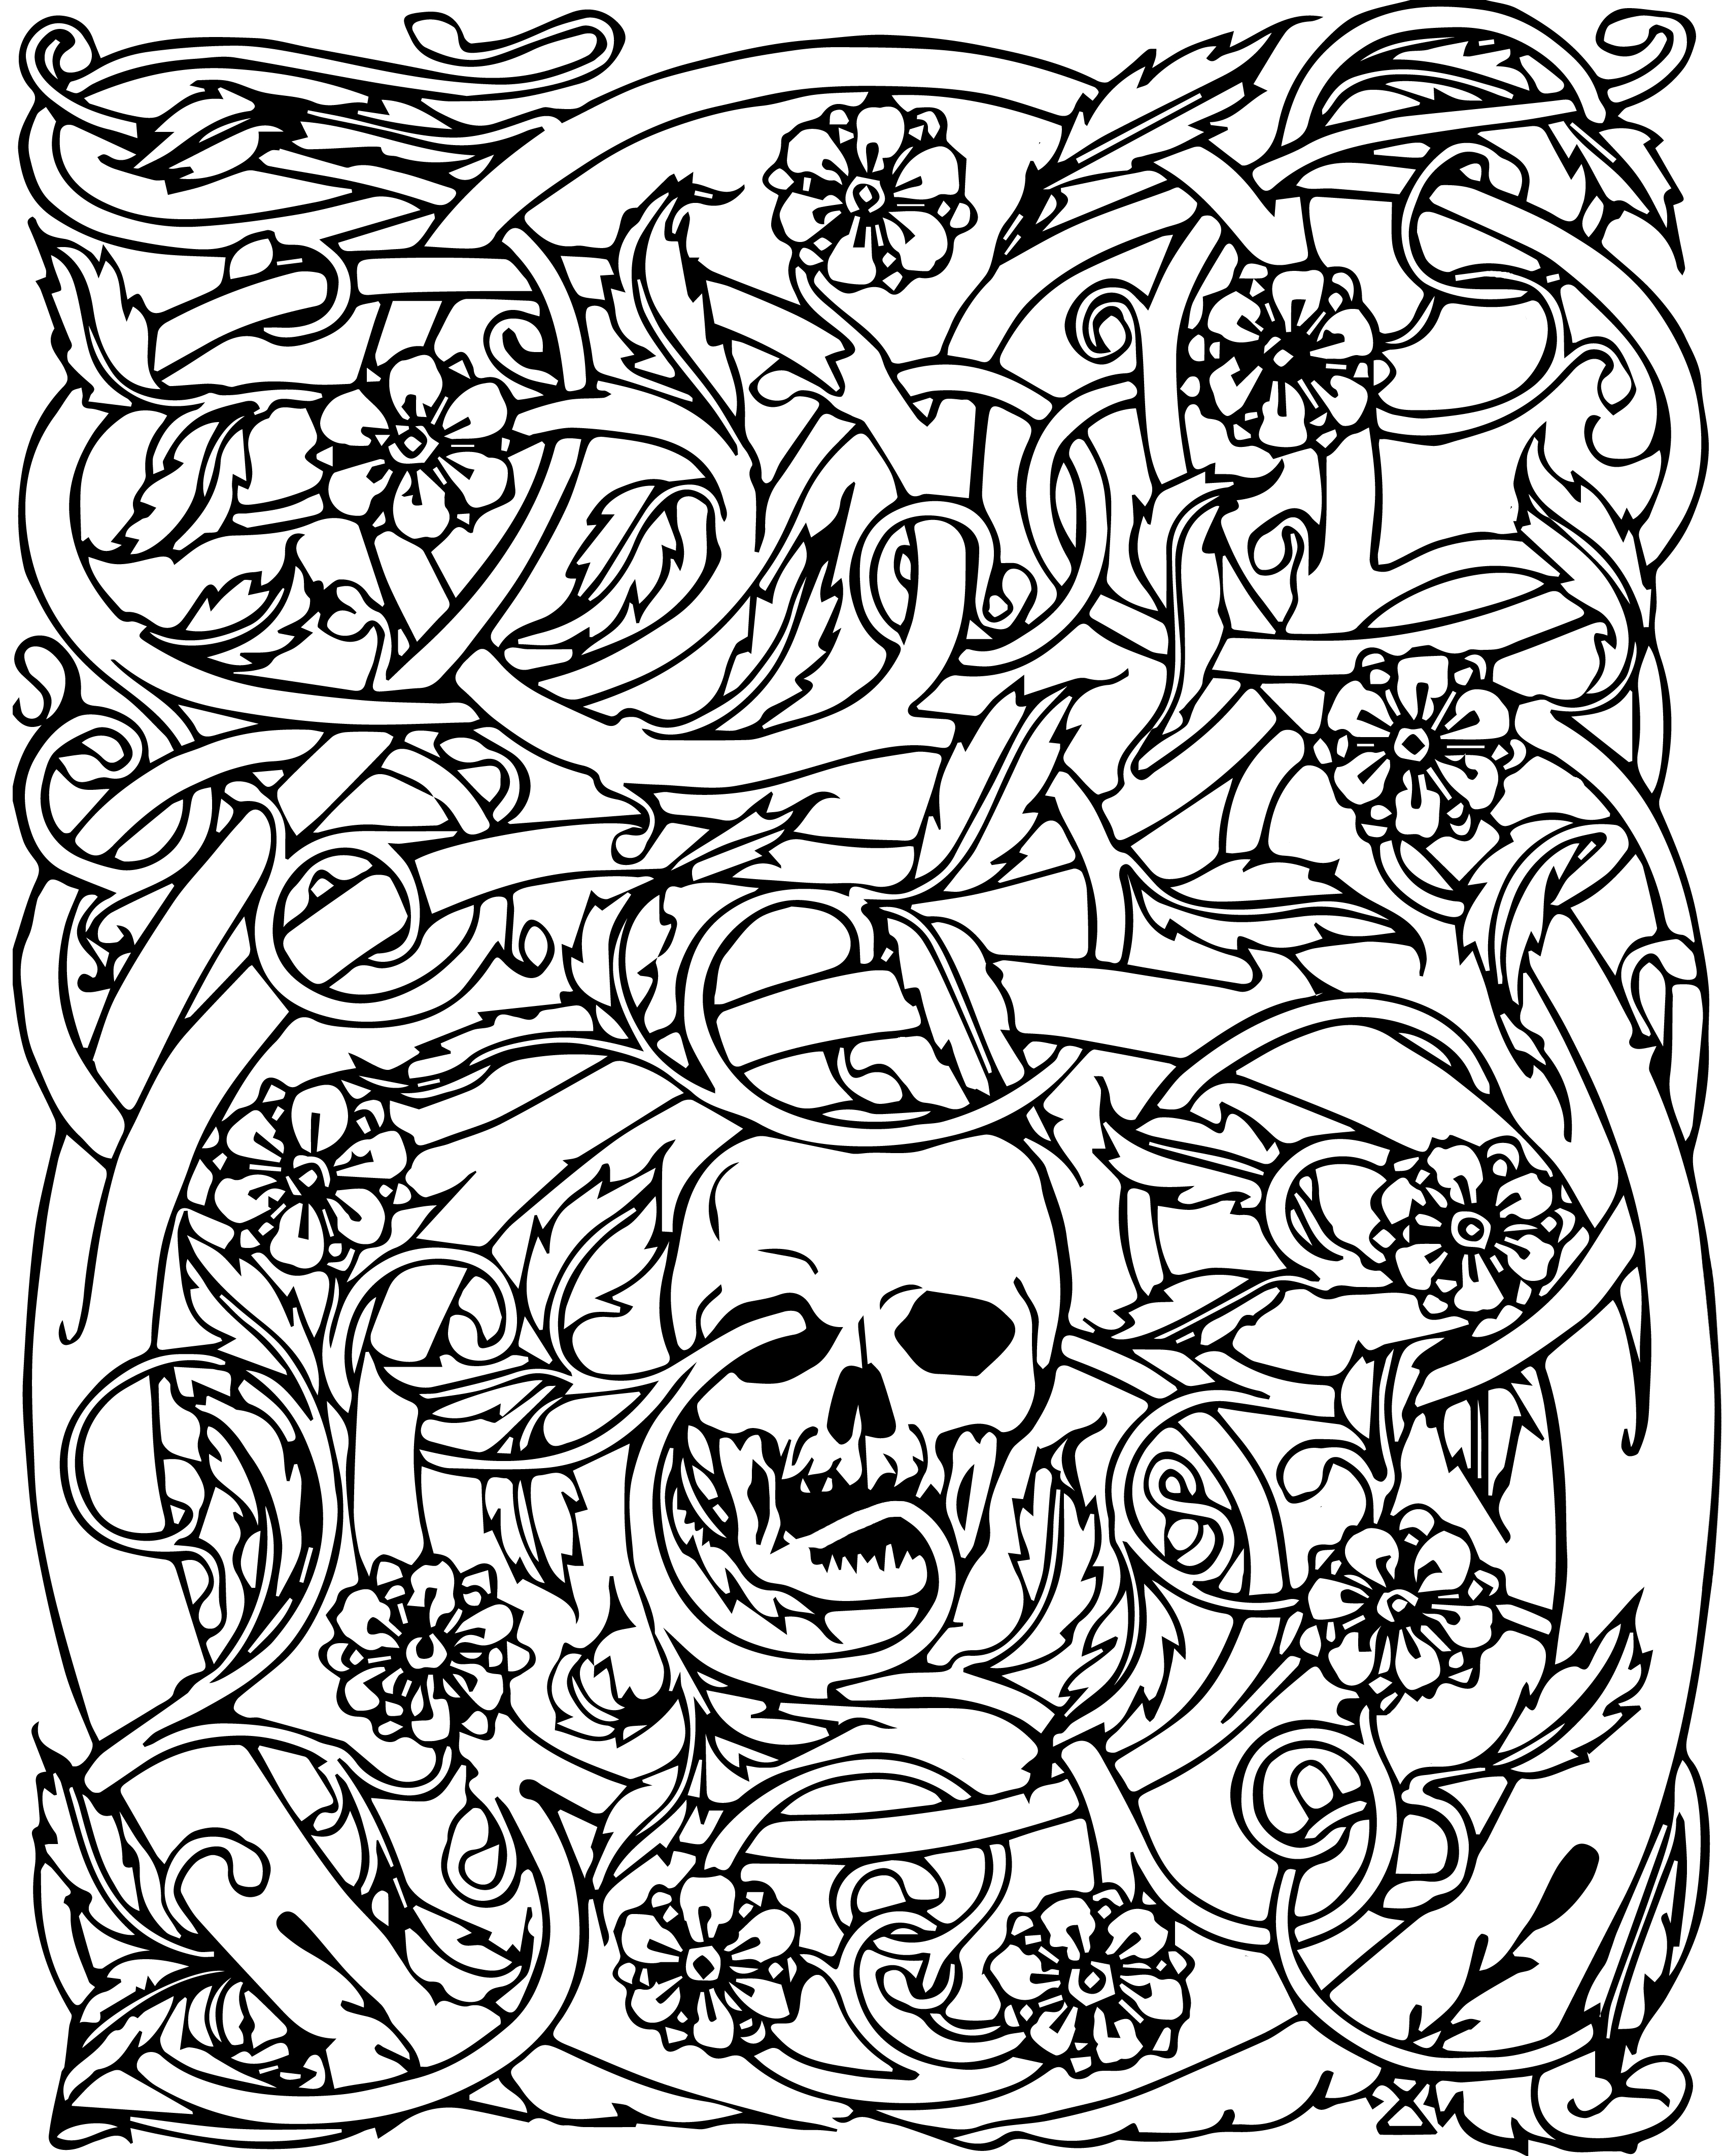 Adult Coloring Pages Halloween at GetDrawings | Free download